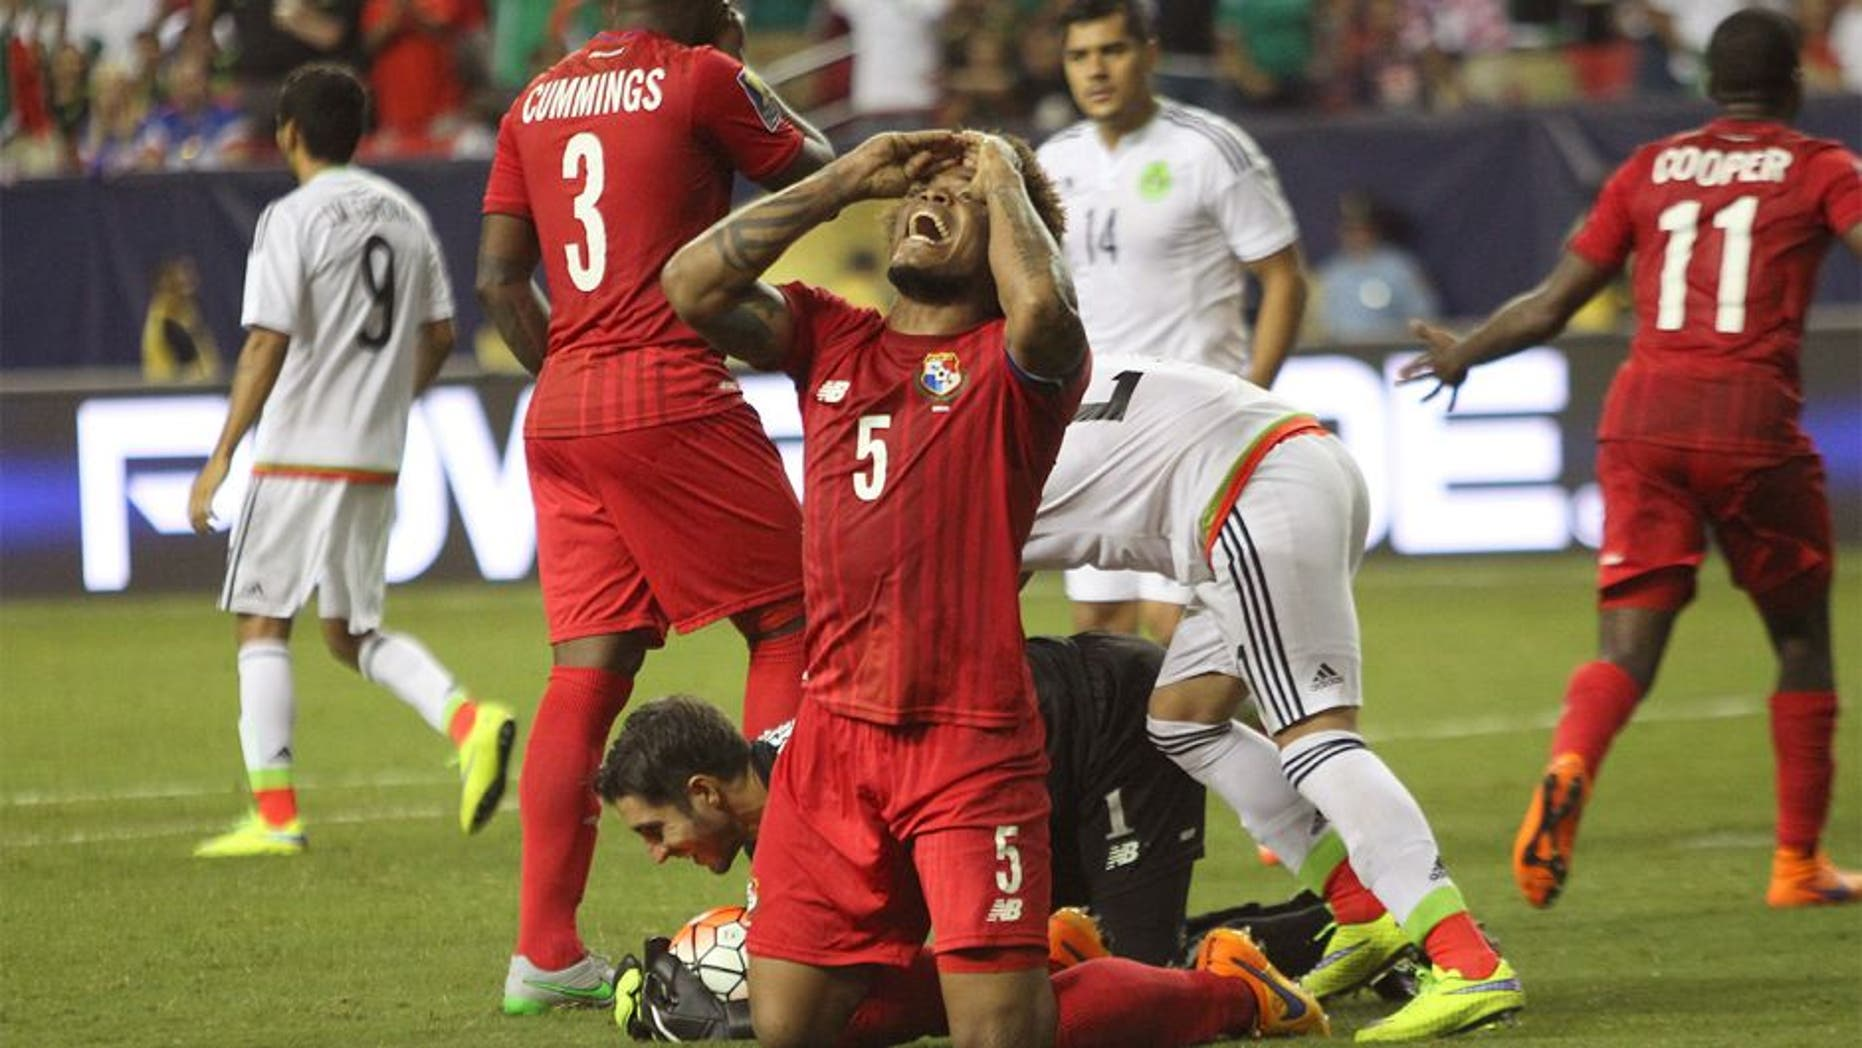 ATLANTA, UNITED STATES - July 22: Roman Torres of Panama reacts after the referee called a penalty during a semi final match between Mexico and Panama as part of Gold Cup 2015 at Georgia Dome on July 22, 2015 in Atlanta, United States. (Photo by Omar Vega/LatinContent/Getty Images)